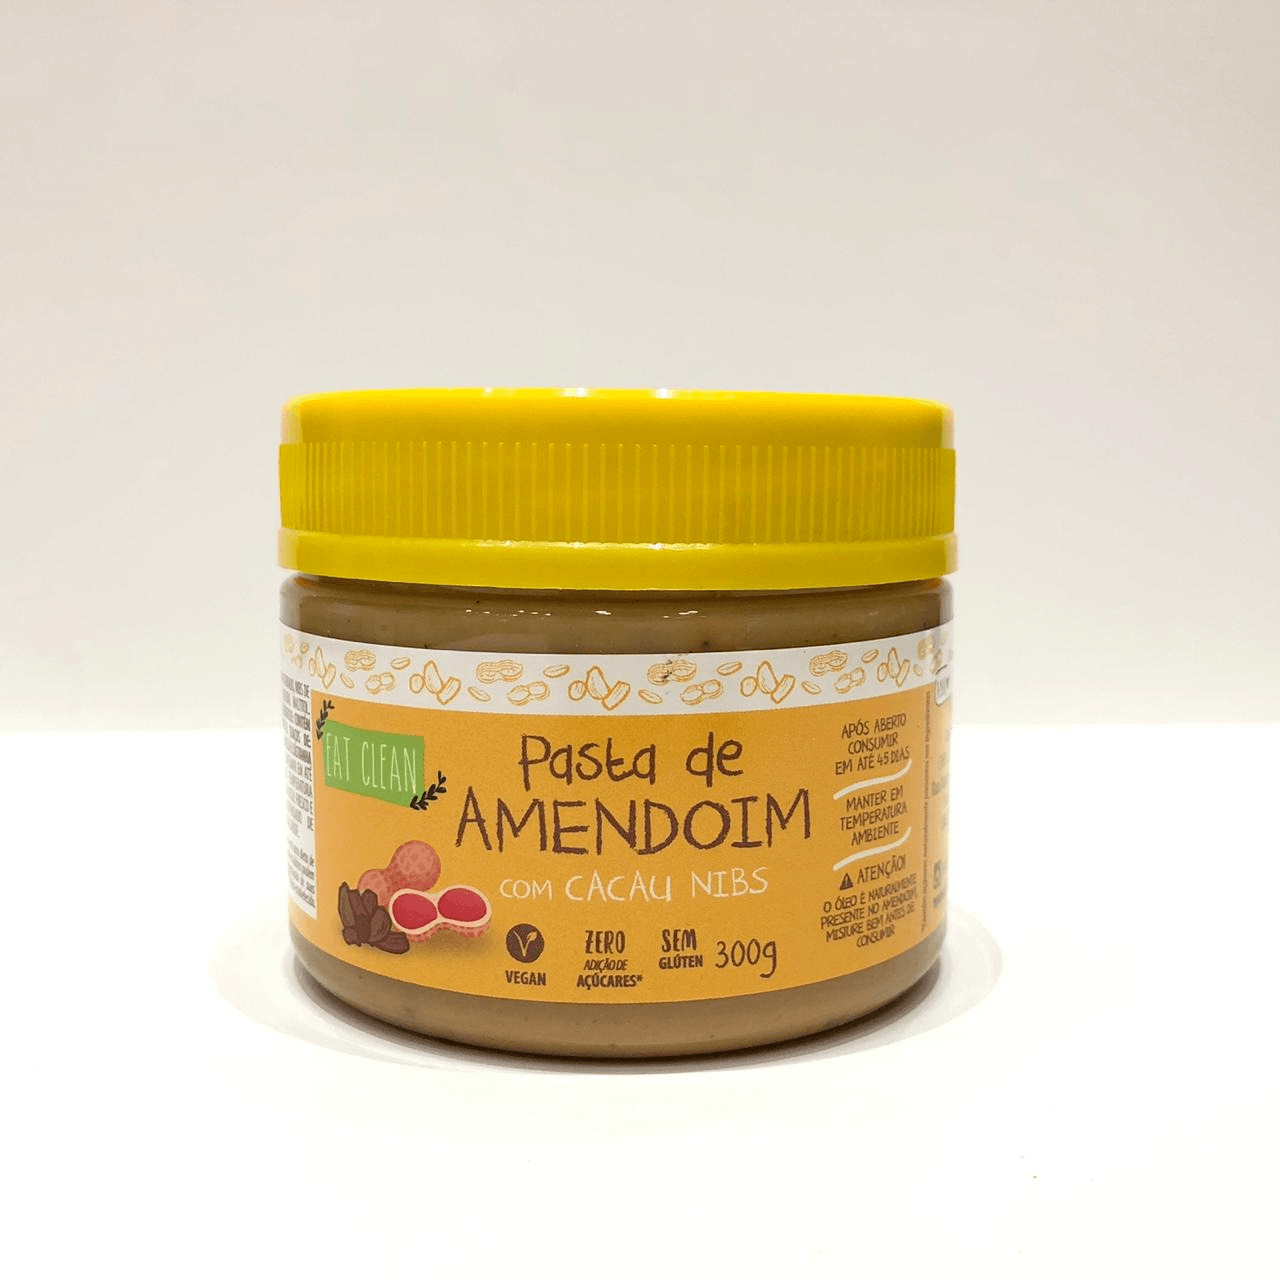 PASTA DE AMENDOIM CACAU NIBS 300G (EAT CLEAN)